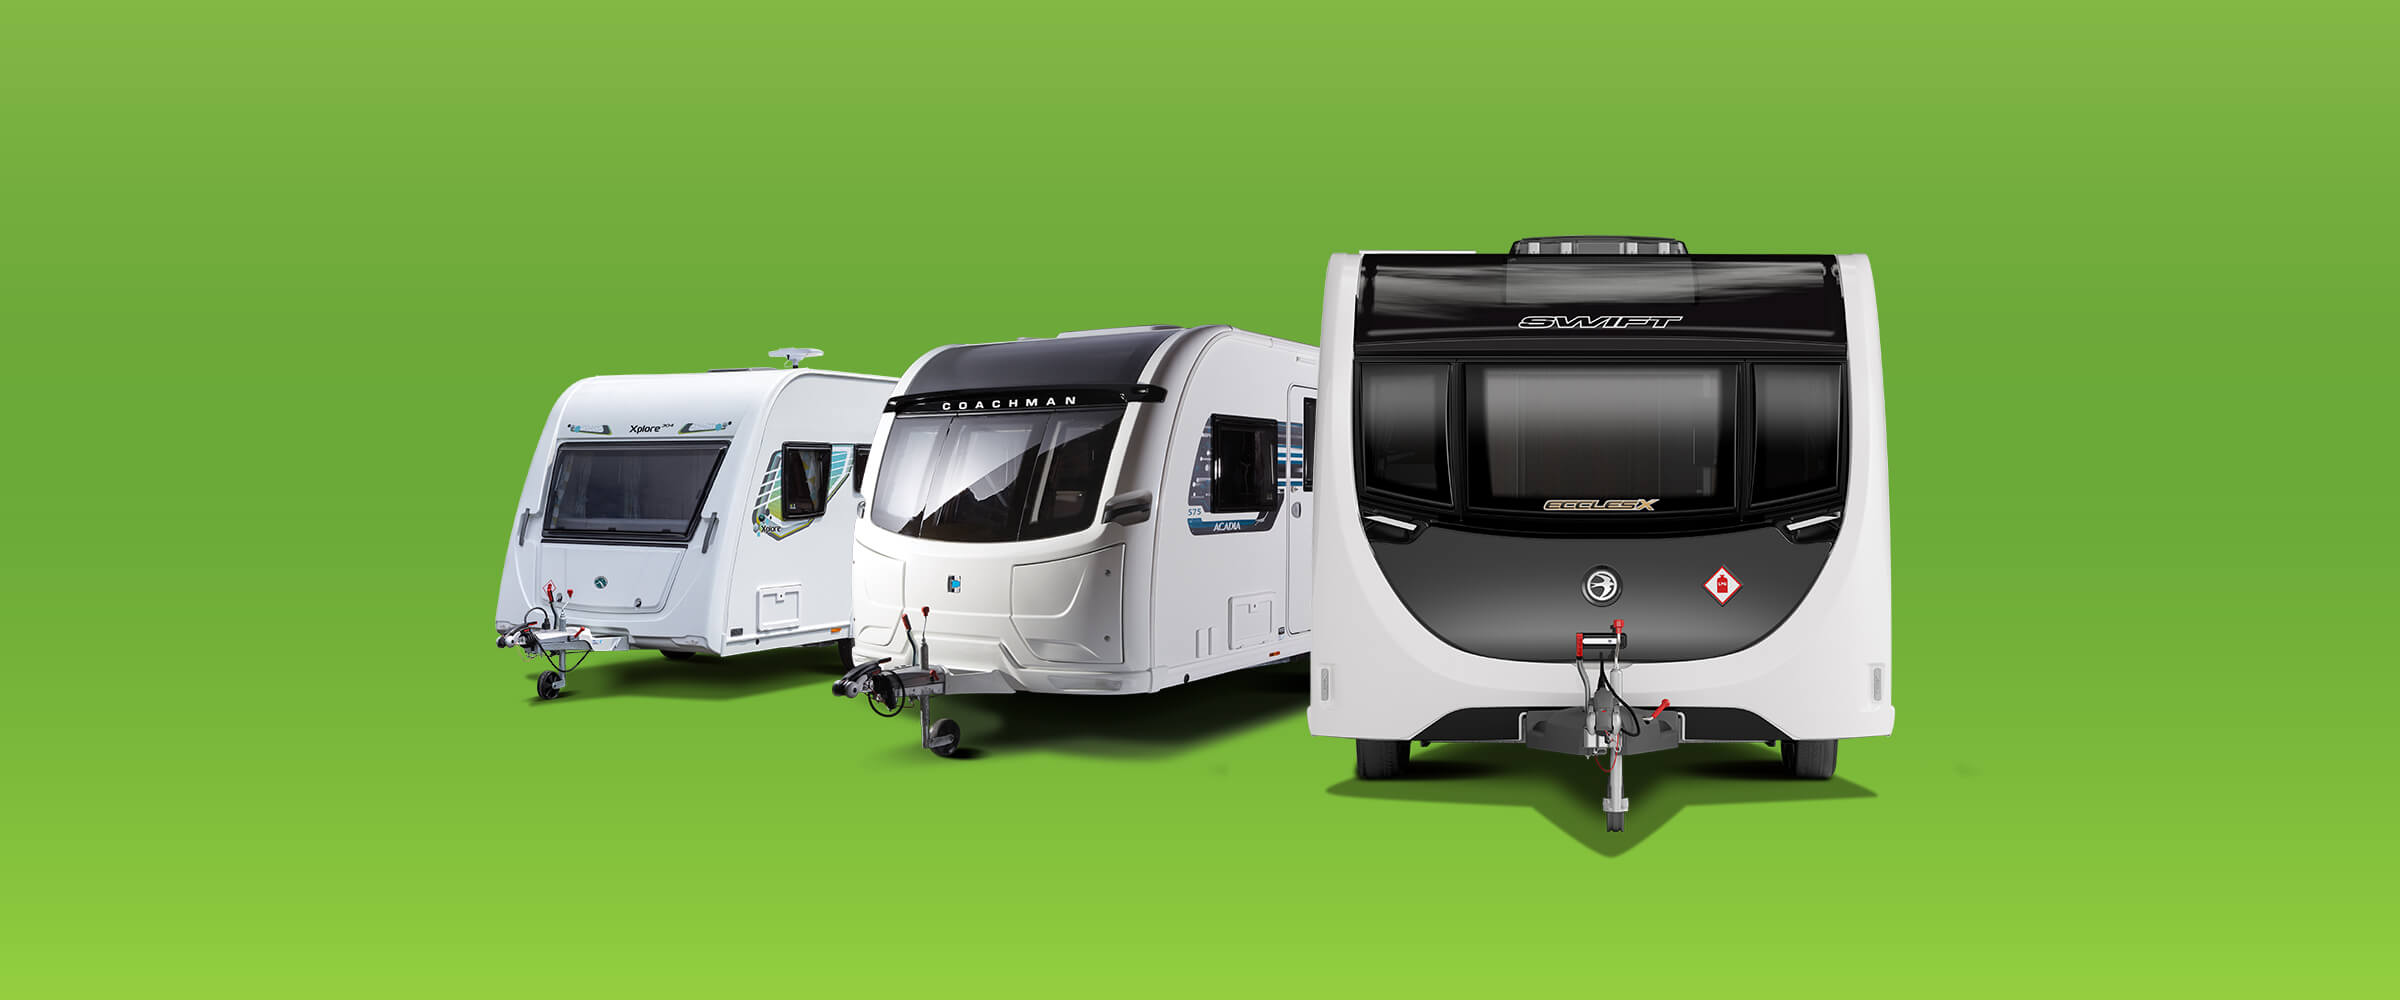 caravan motorhome convention